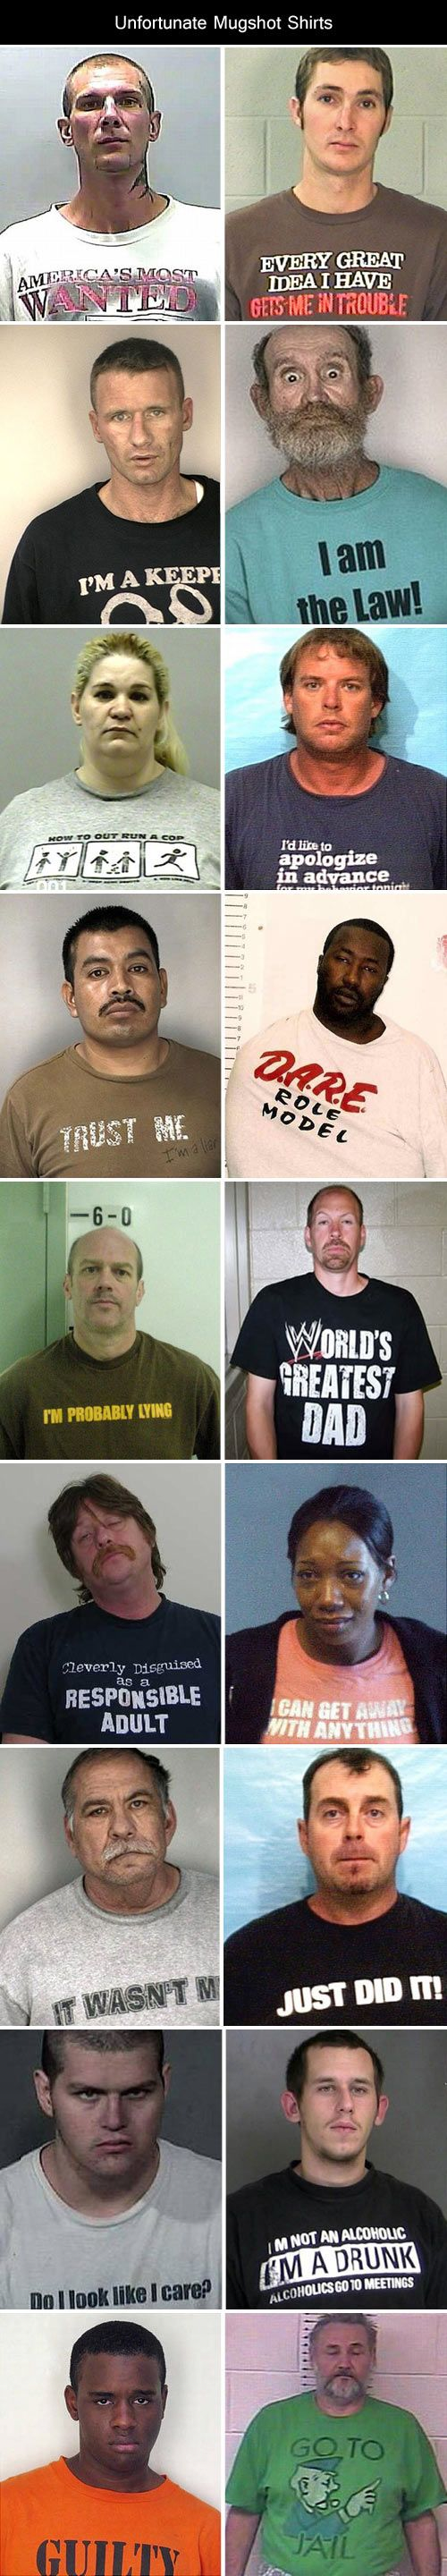 funny-unfortunate-mugshot-shirts